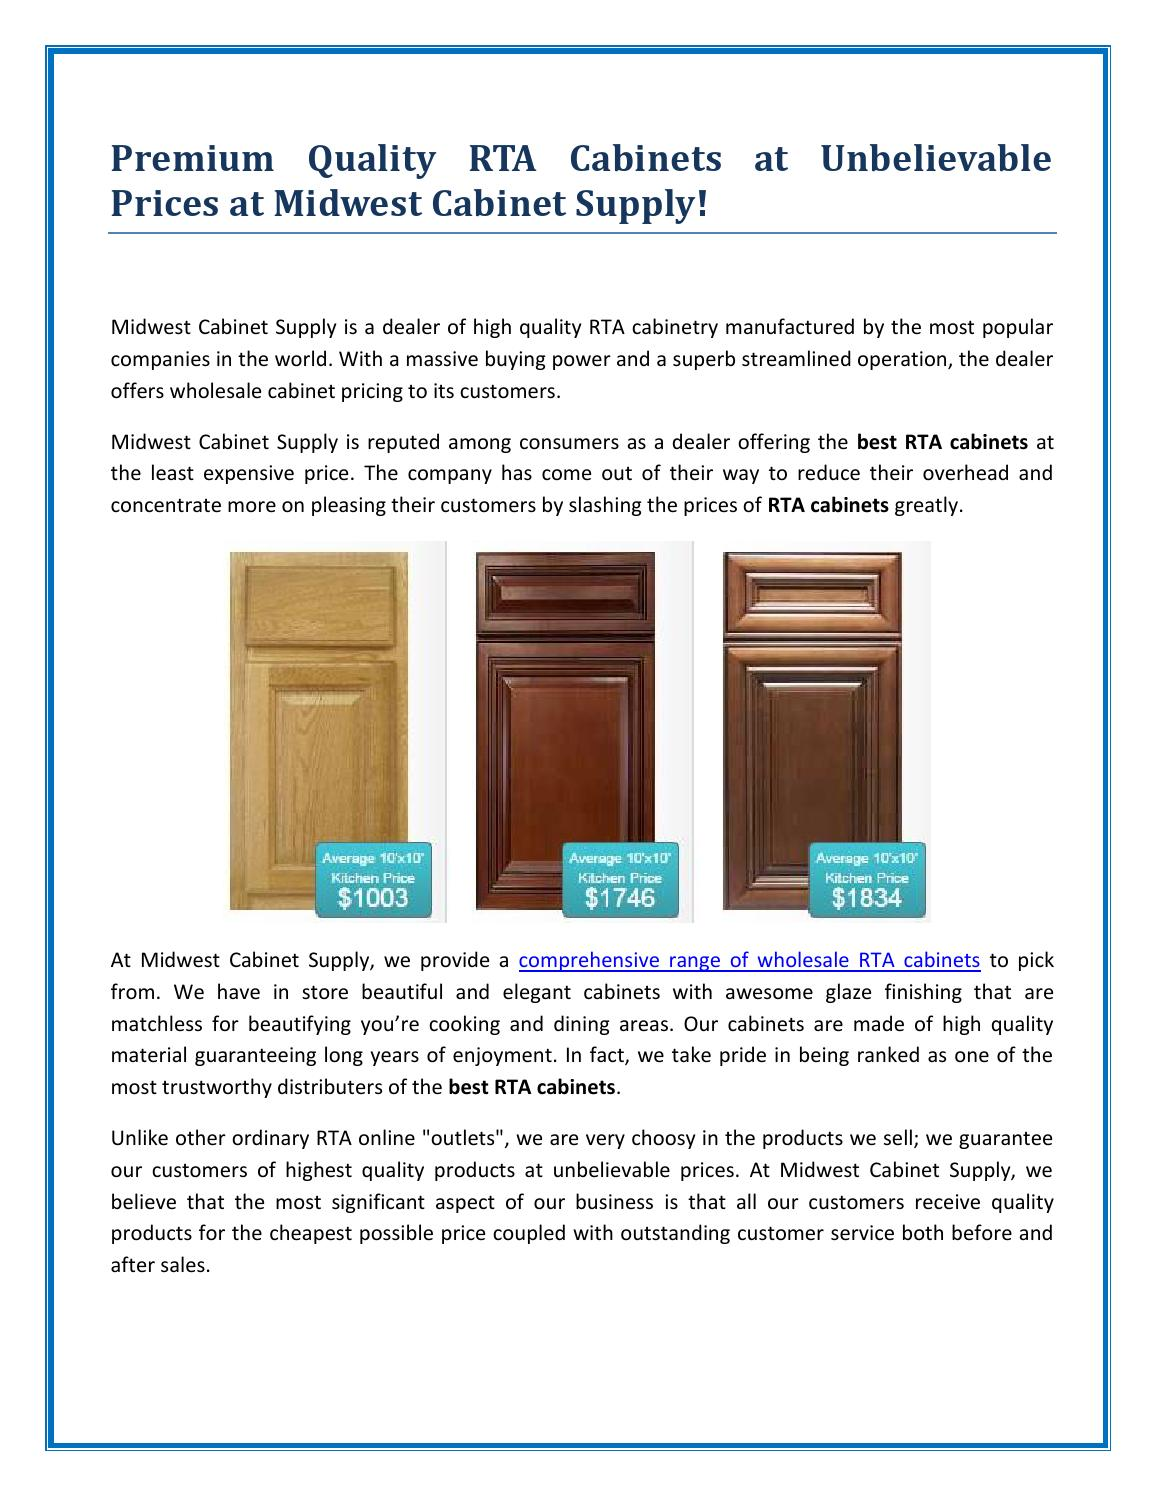 Quality Rta Cabinets By Midwest Cabinet Supply By Mid West Issuu - Quality rta cabinets